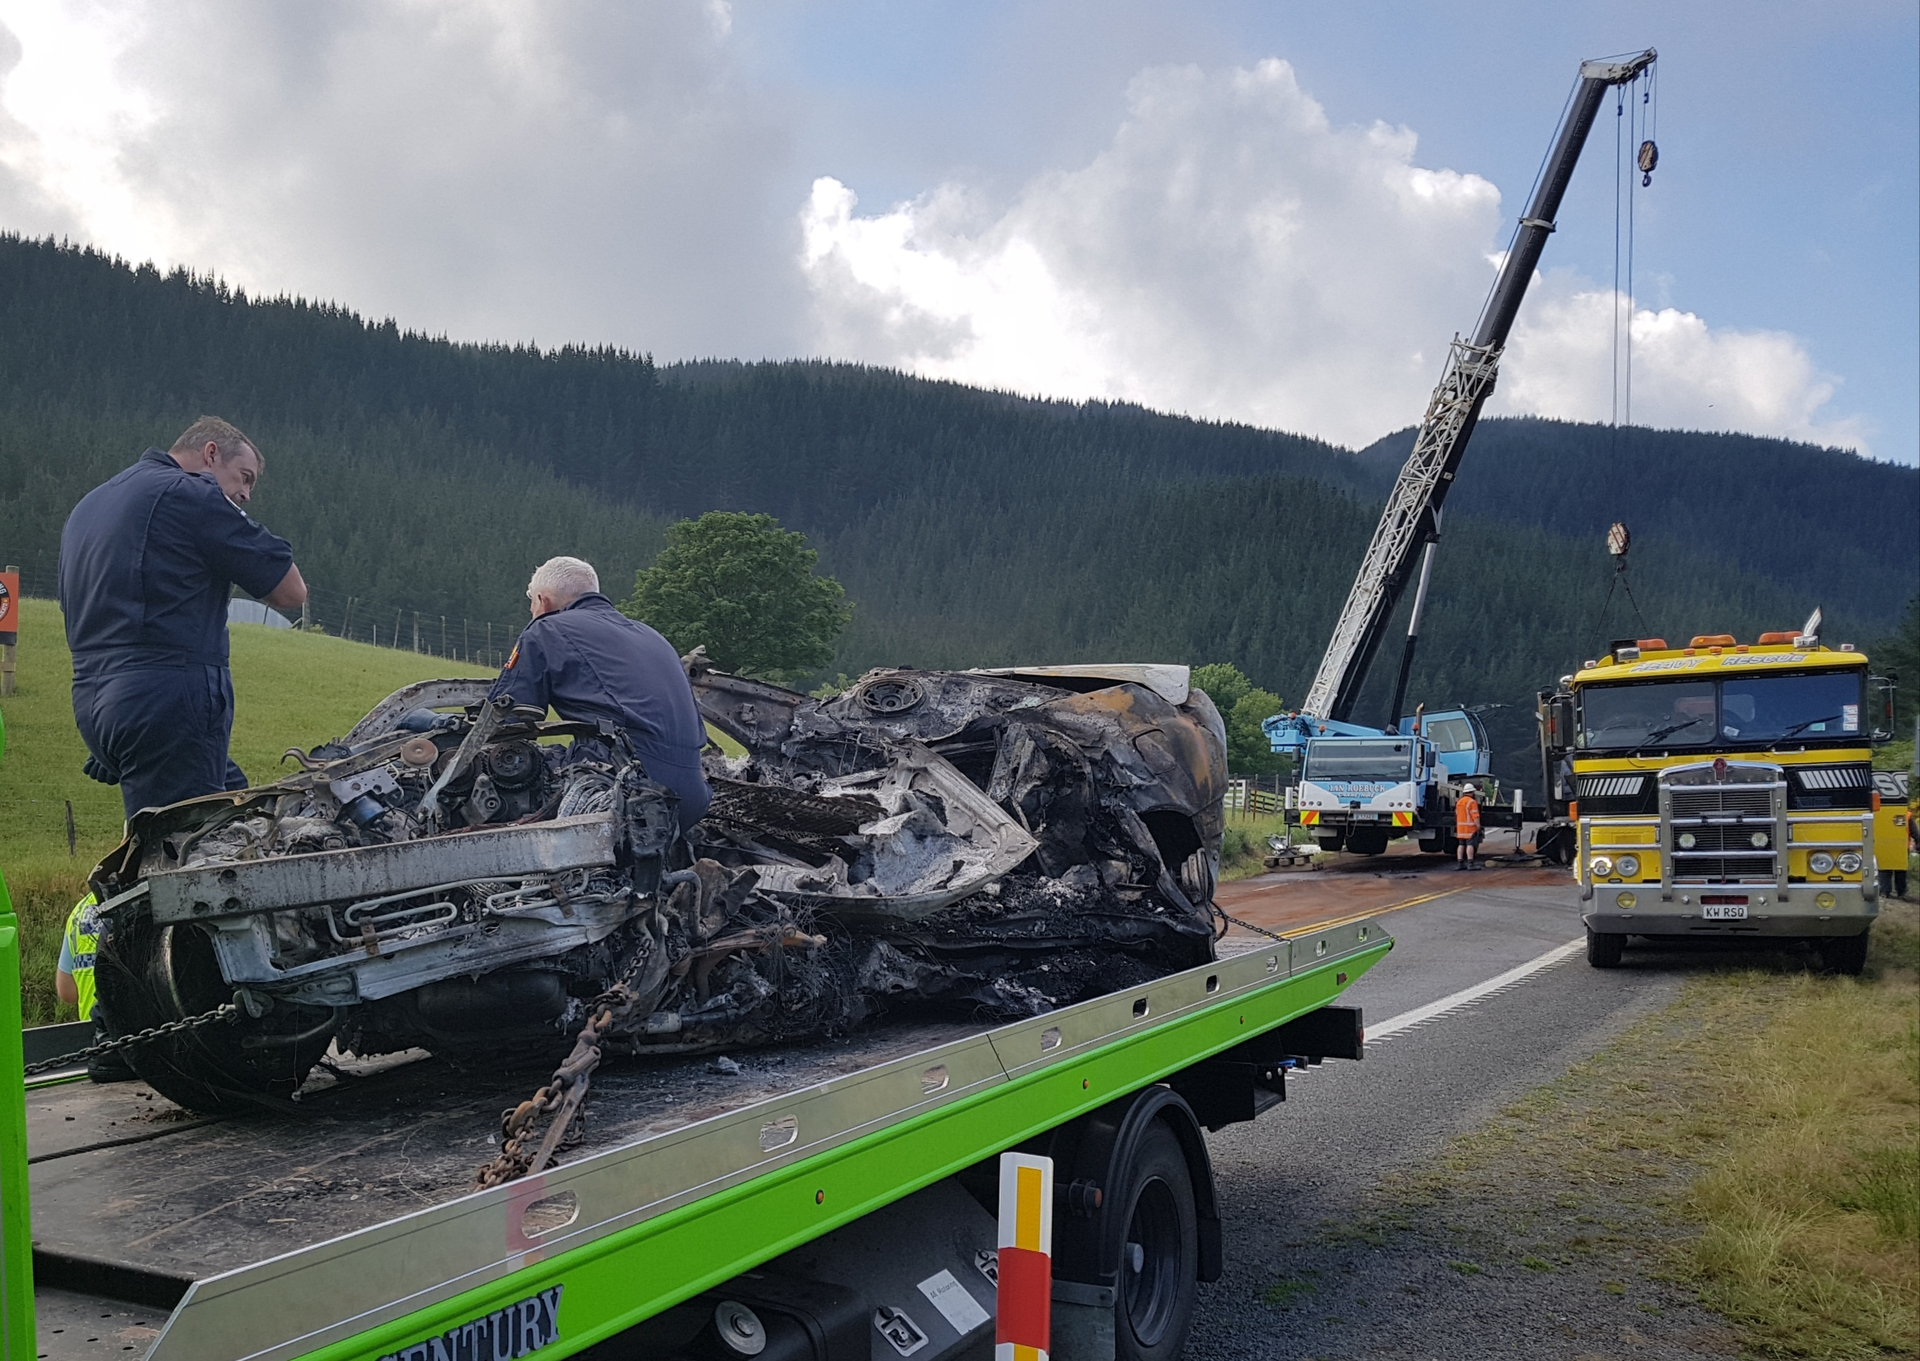 Driver dies in fiery crash on State Highway 1 north of Taupo